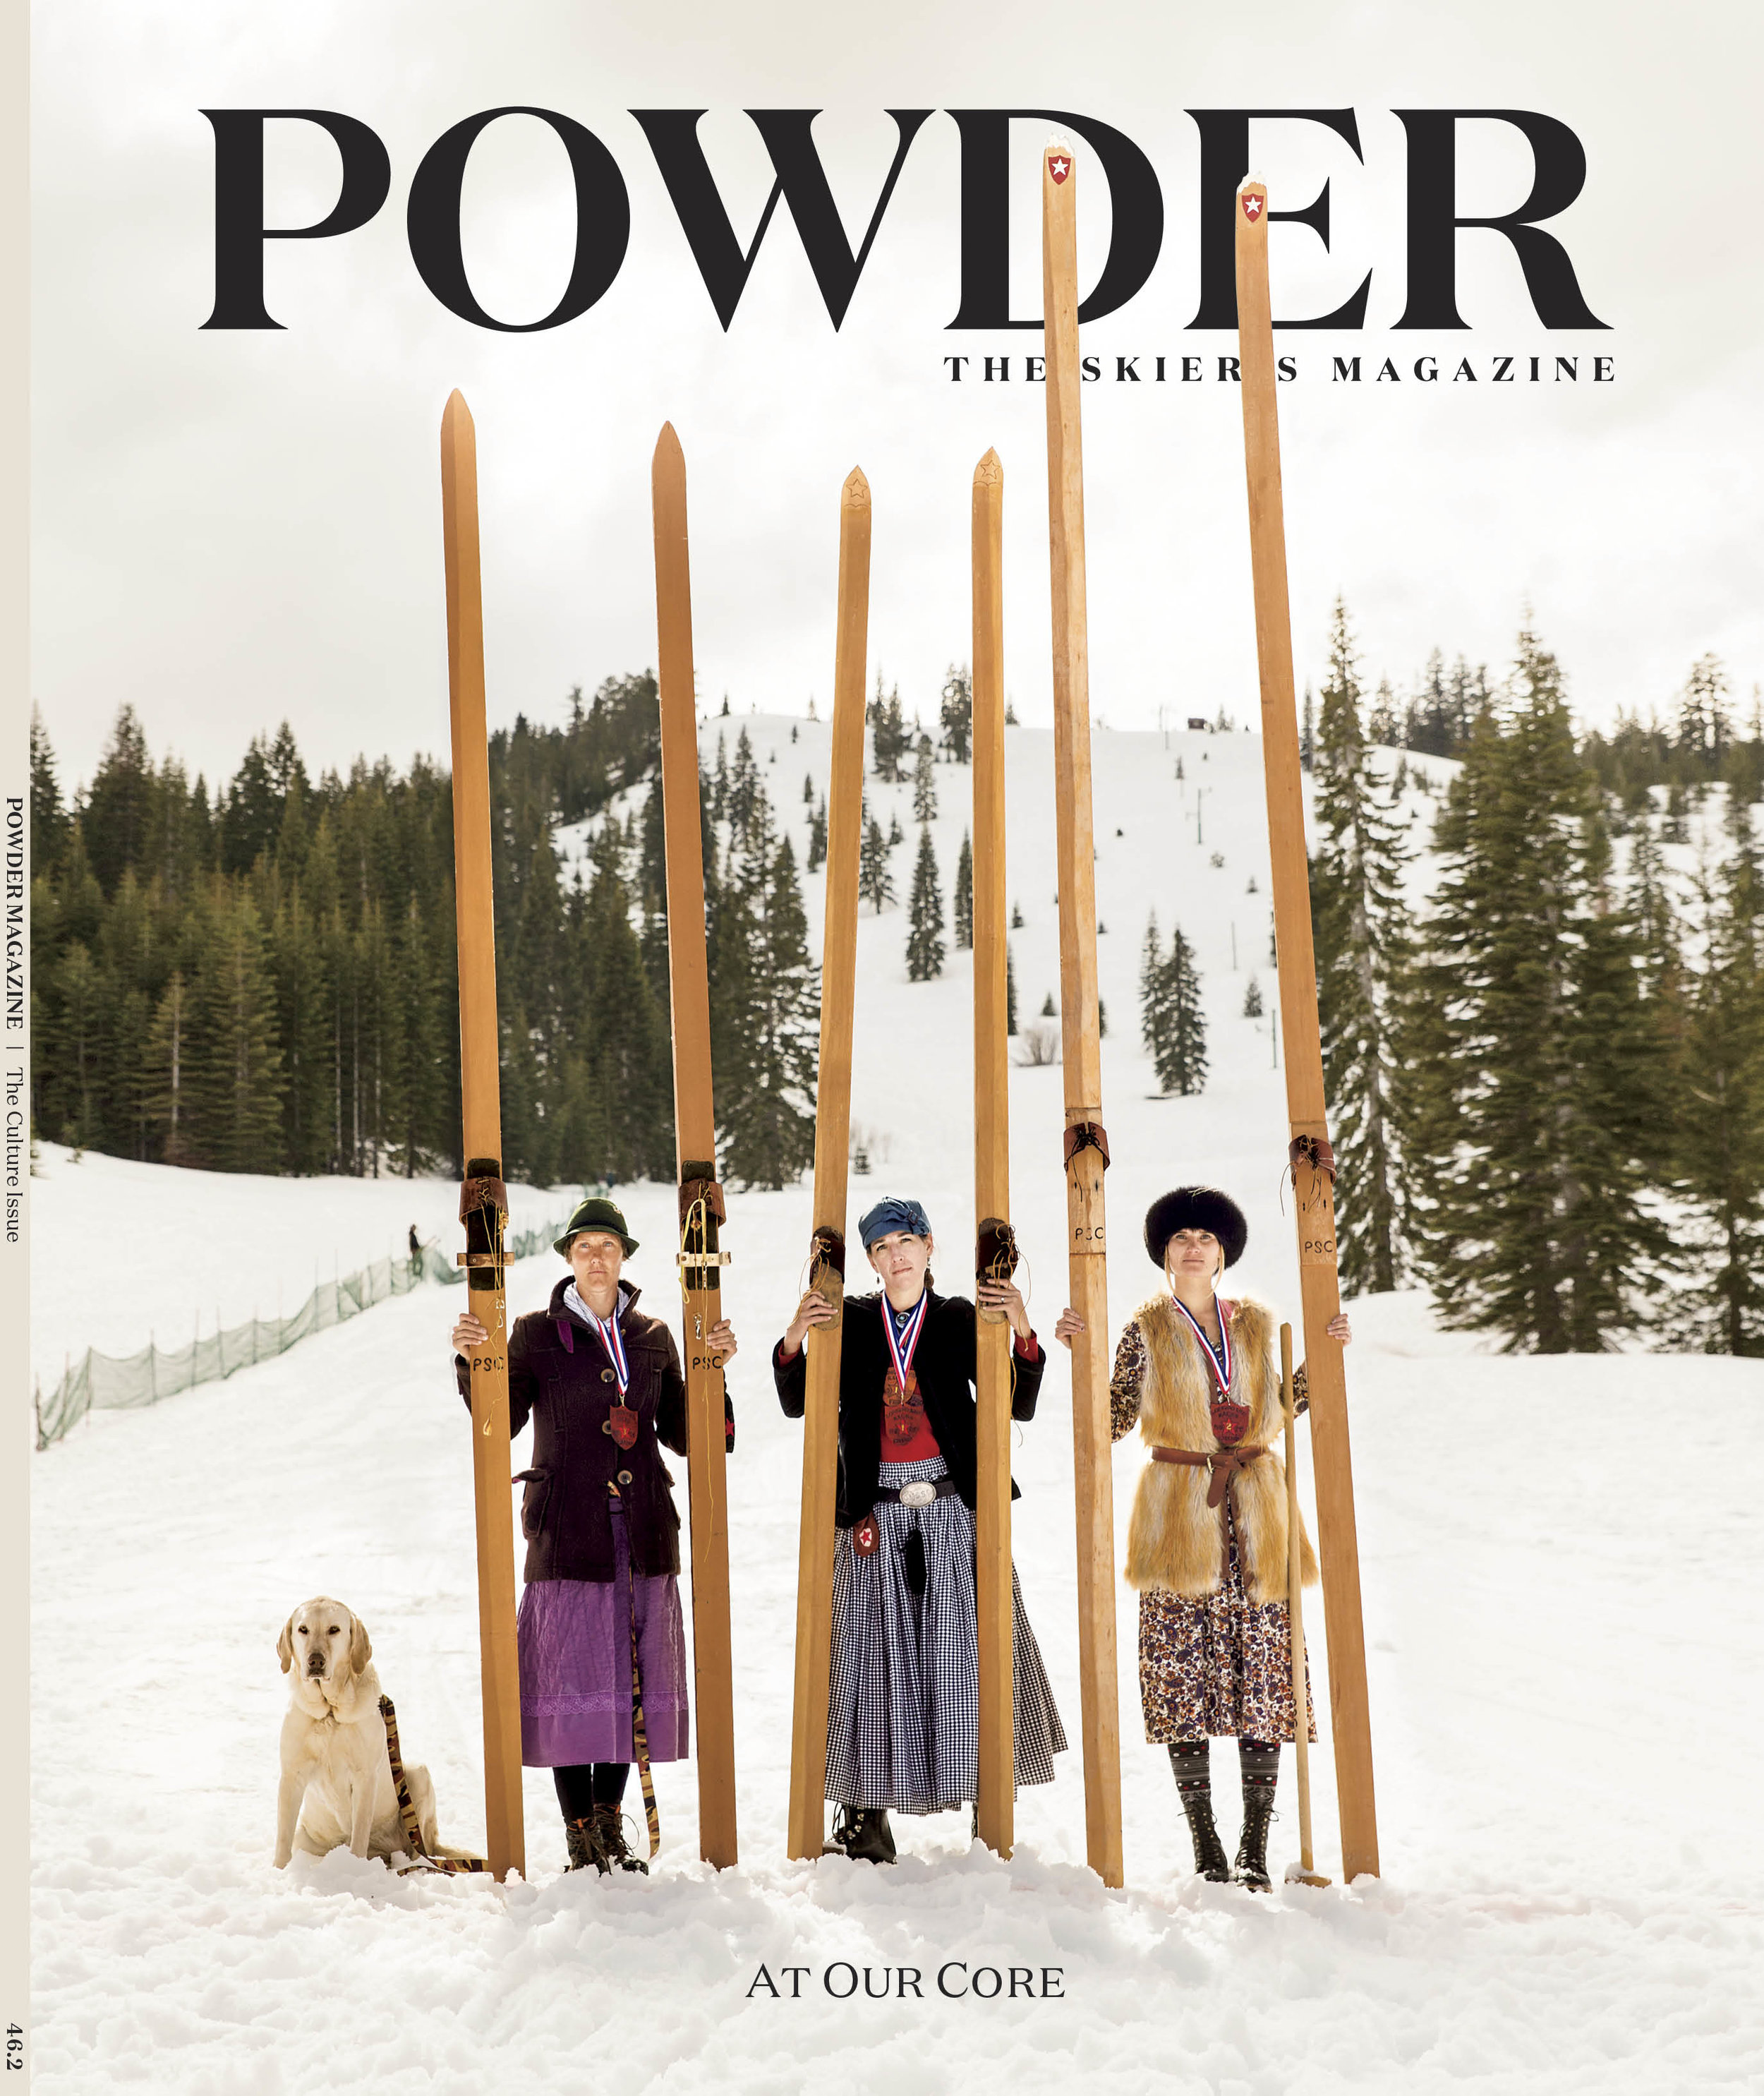 """""""Claire Smallwood"""" - Talking to the director of She Jumps about making desserts, getting women into skiing, and having your own North Star.  Powder Magazine, October 2017"""